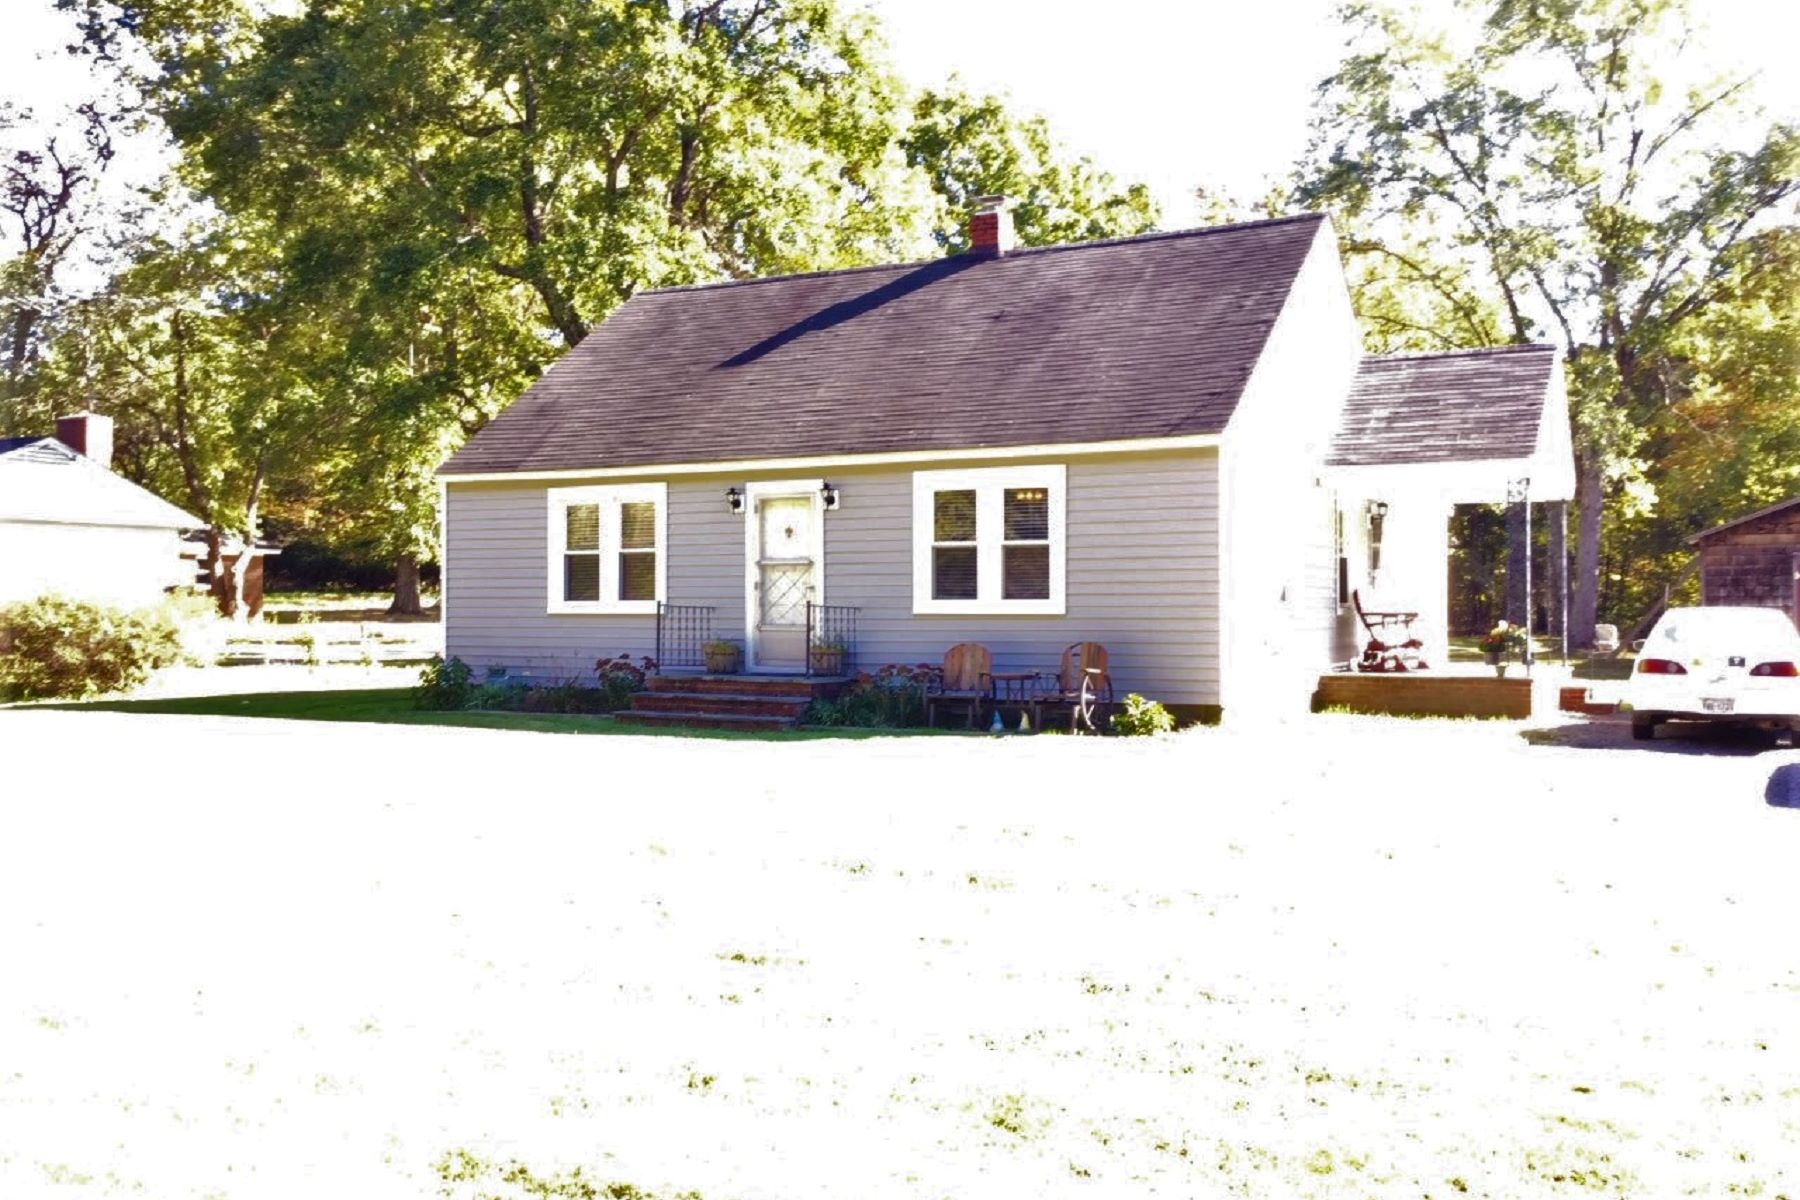 Single Family Homes for Active at 20456 Constitution Hwy Orange, Virginia 22960 United States